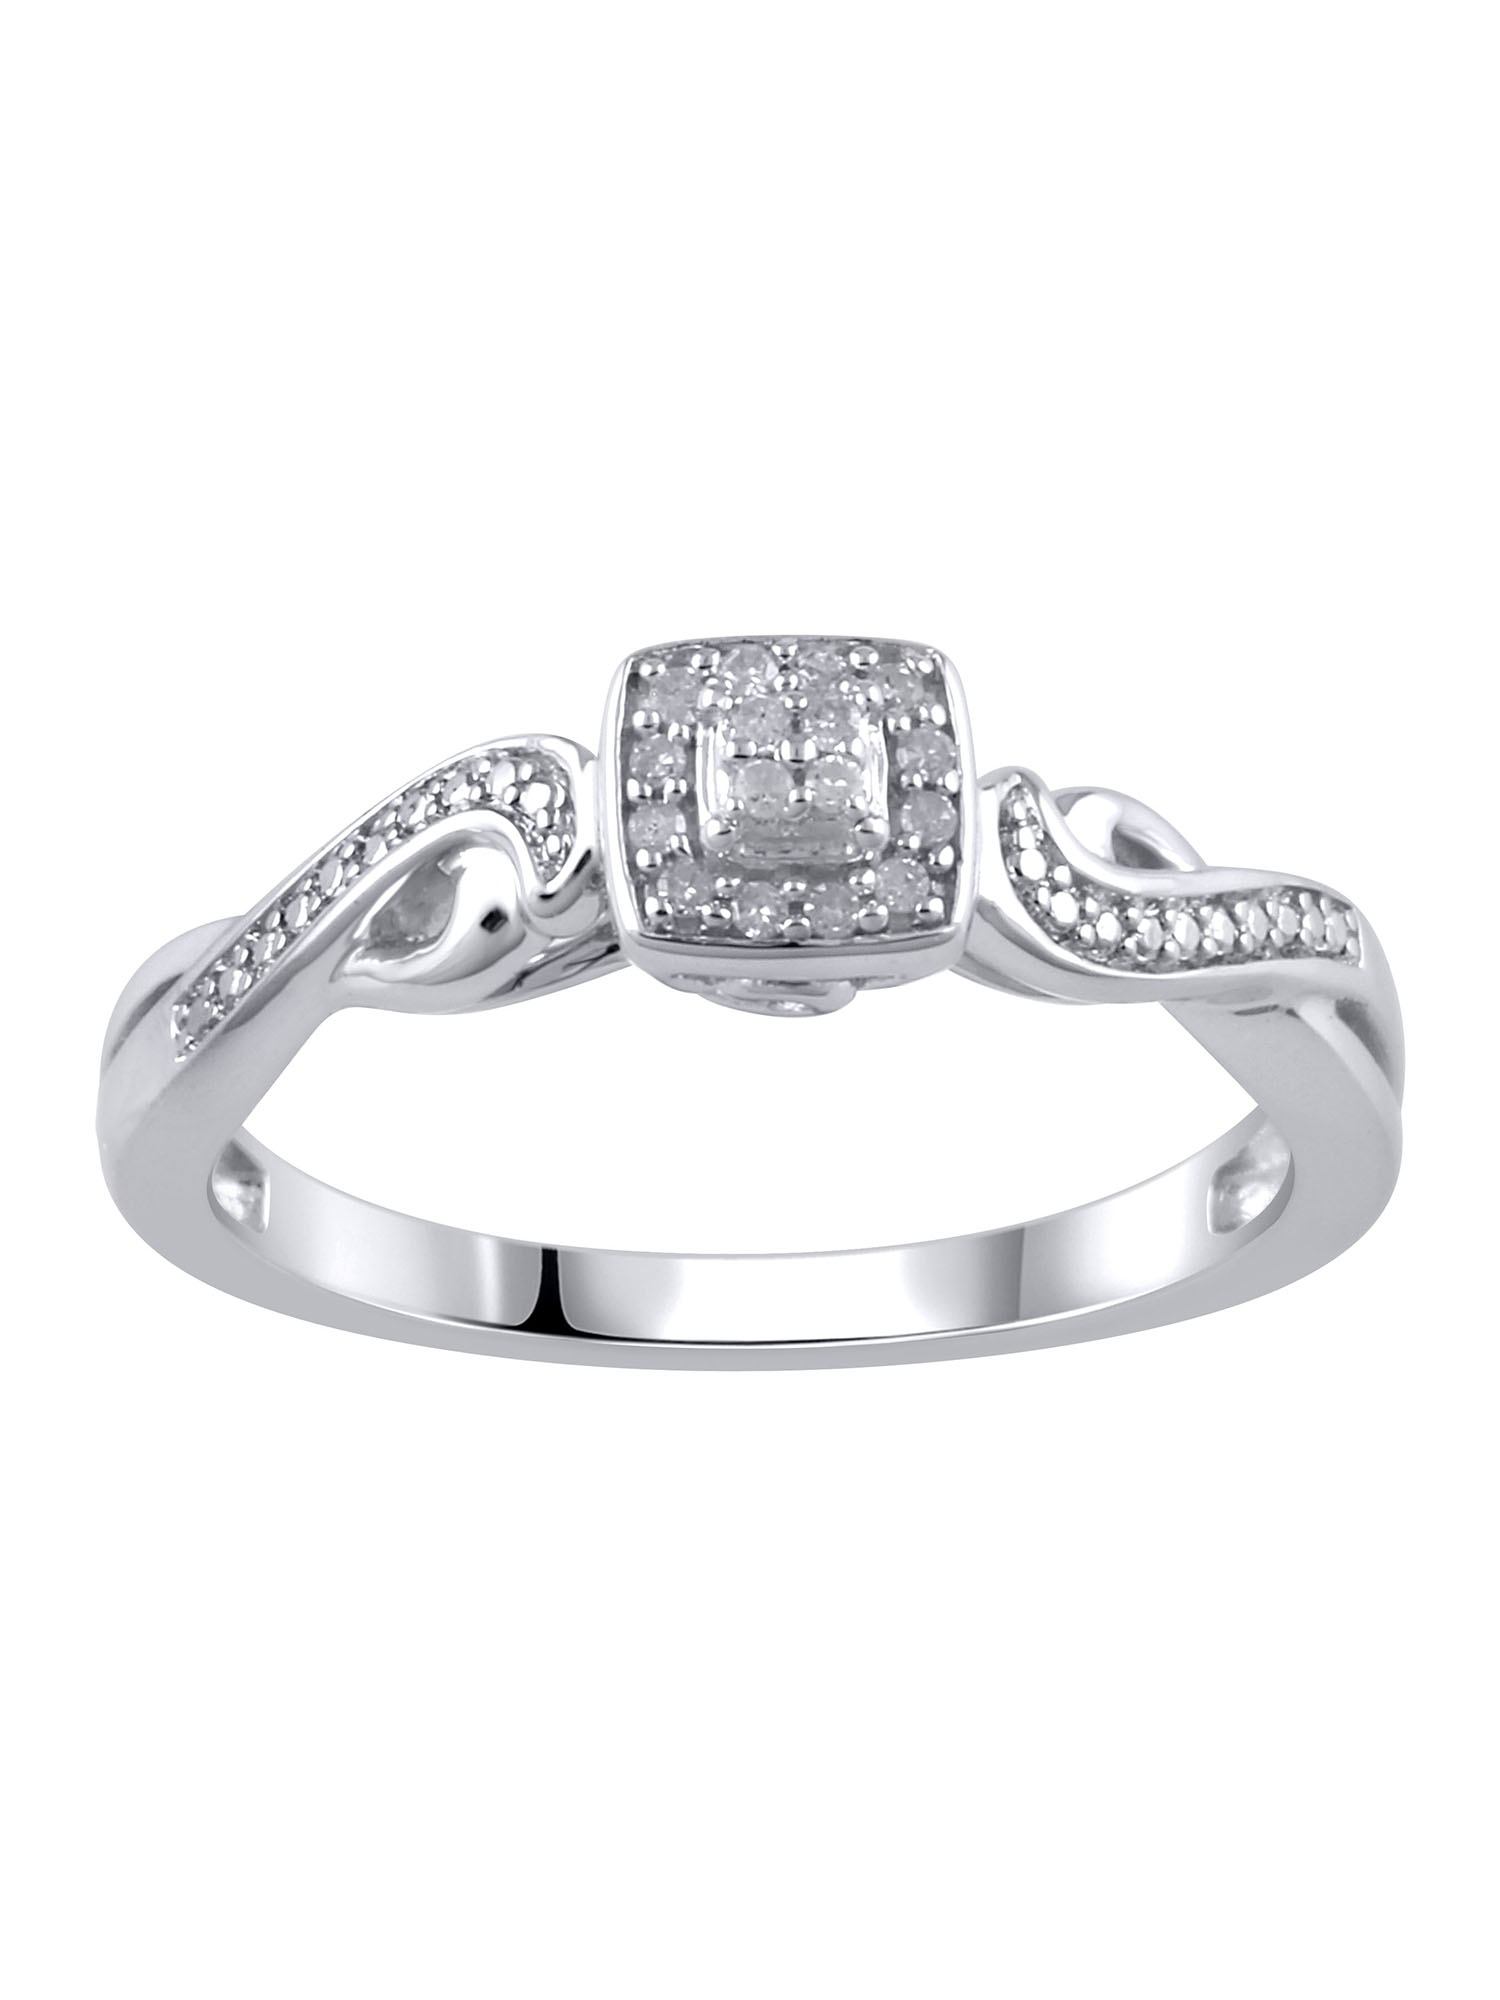 Hold My Hand 120 Carat TW Sterling Silver Promise Ring Walmartcom